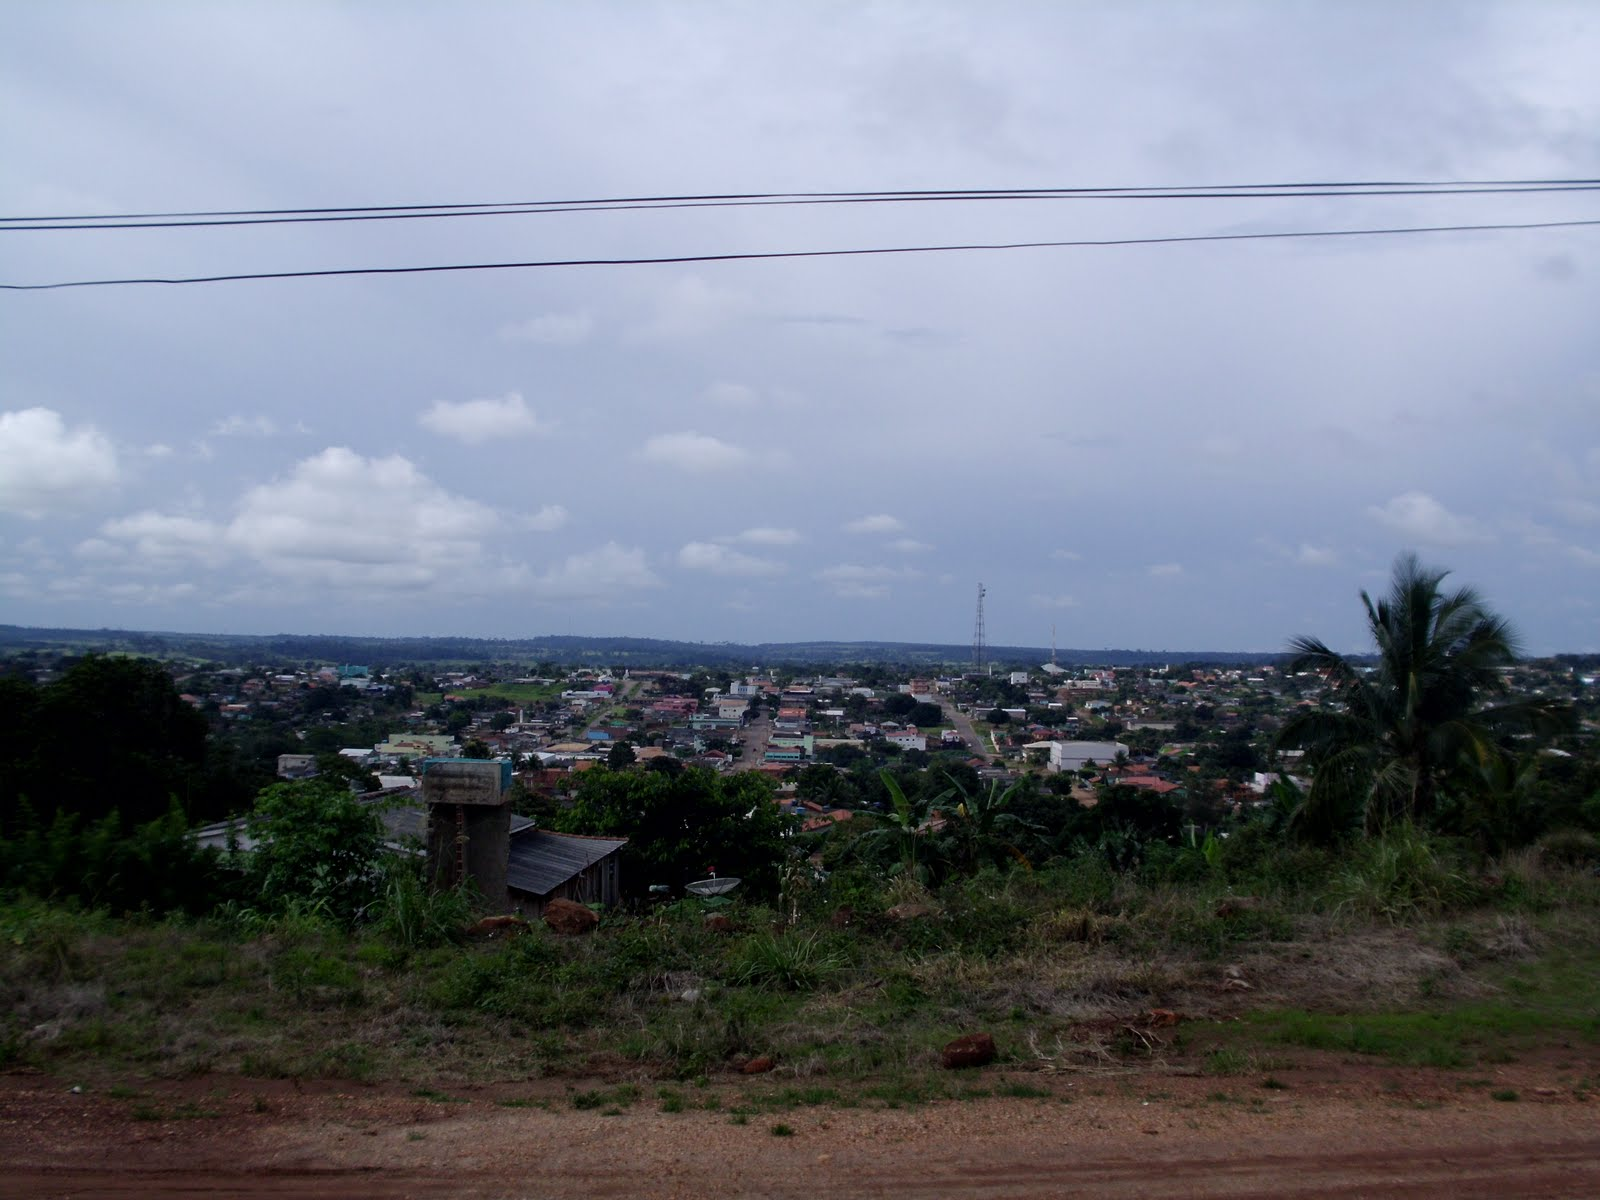 COLORADO DO OESTE - RONDÔNIA